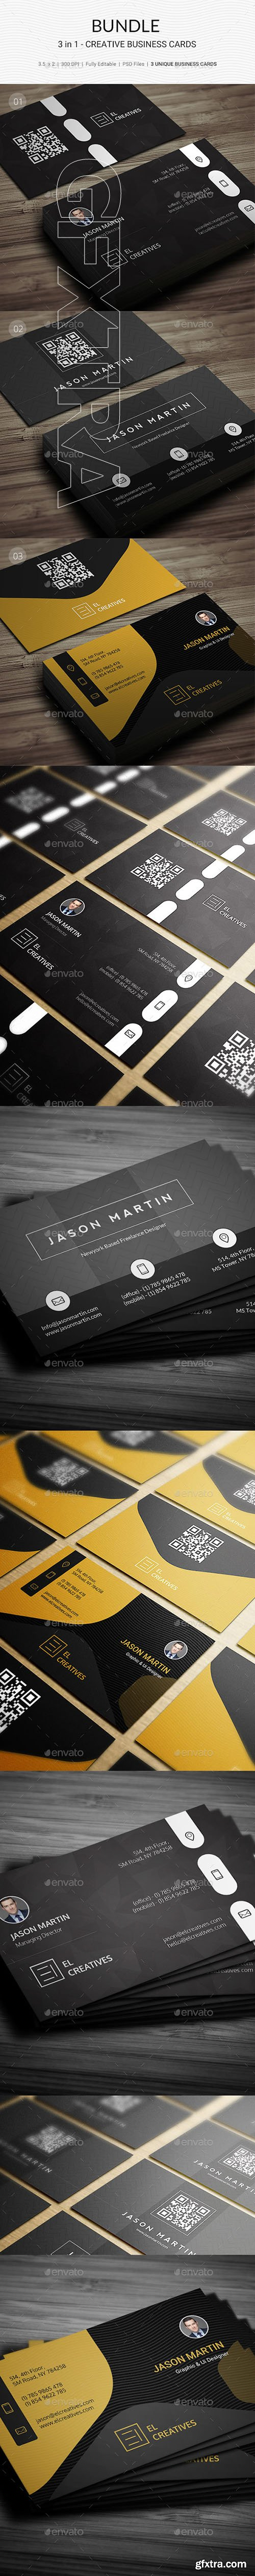 GraphicRiver - Bundle - 3 in 1 - Creative Business Cards - 180 21943110